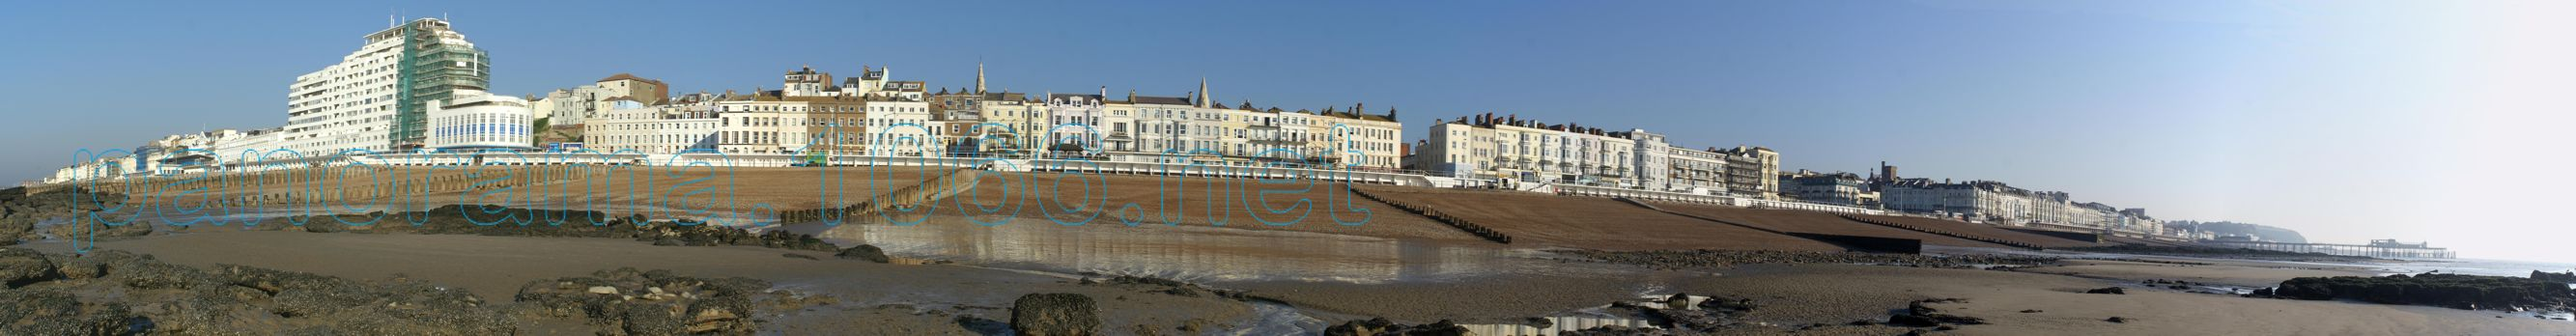 St Leonards Seafront Panorama 2